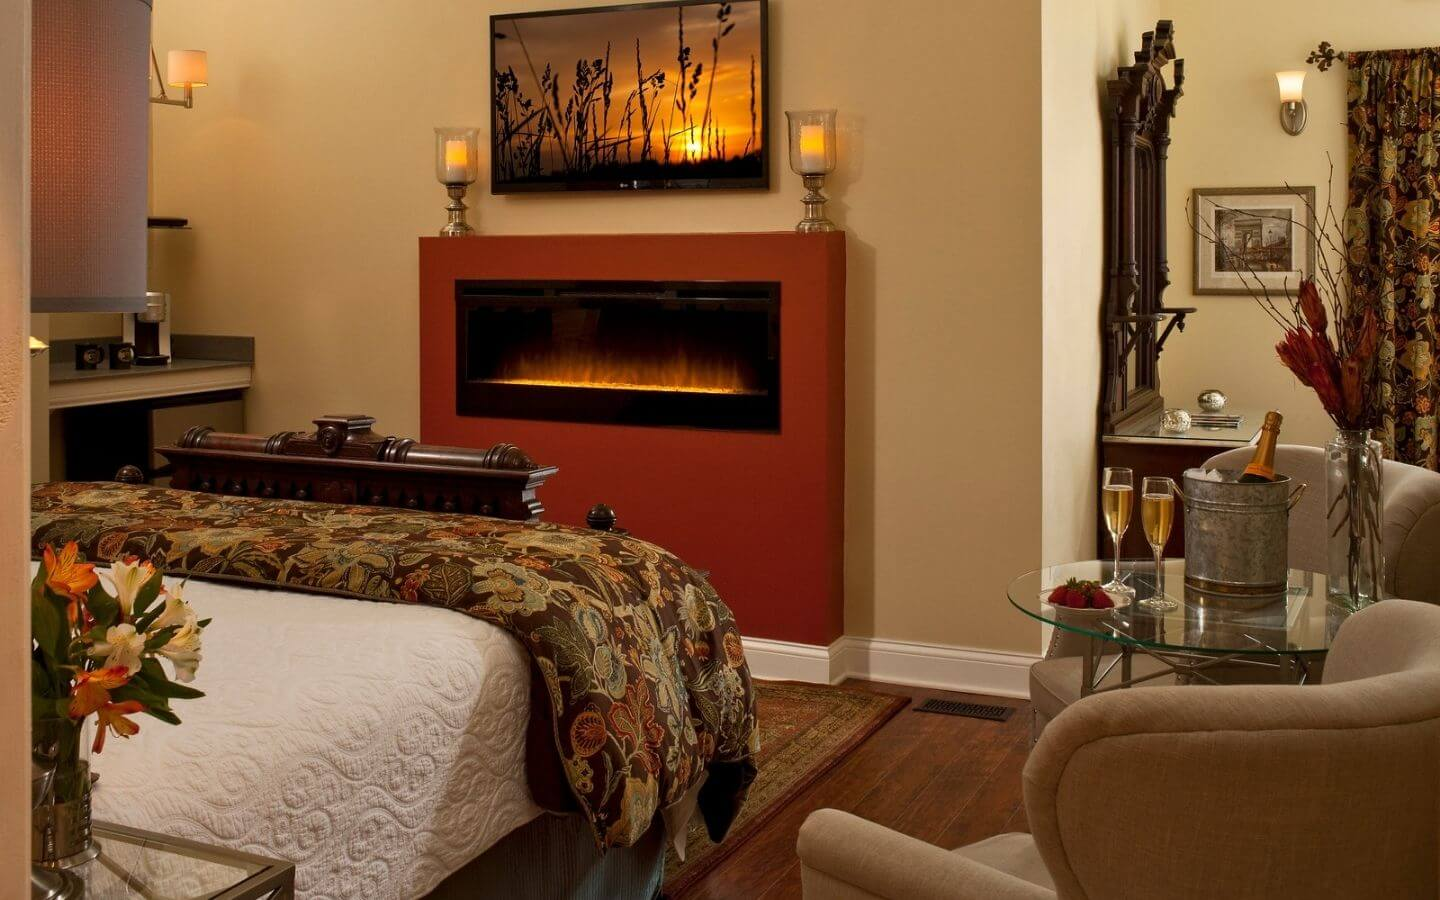 Warm and inviting Camelot Suite with tan walls, gold and burgundy accents and beautiful gas fireplace.